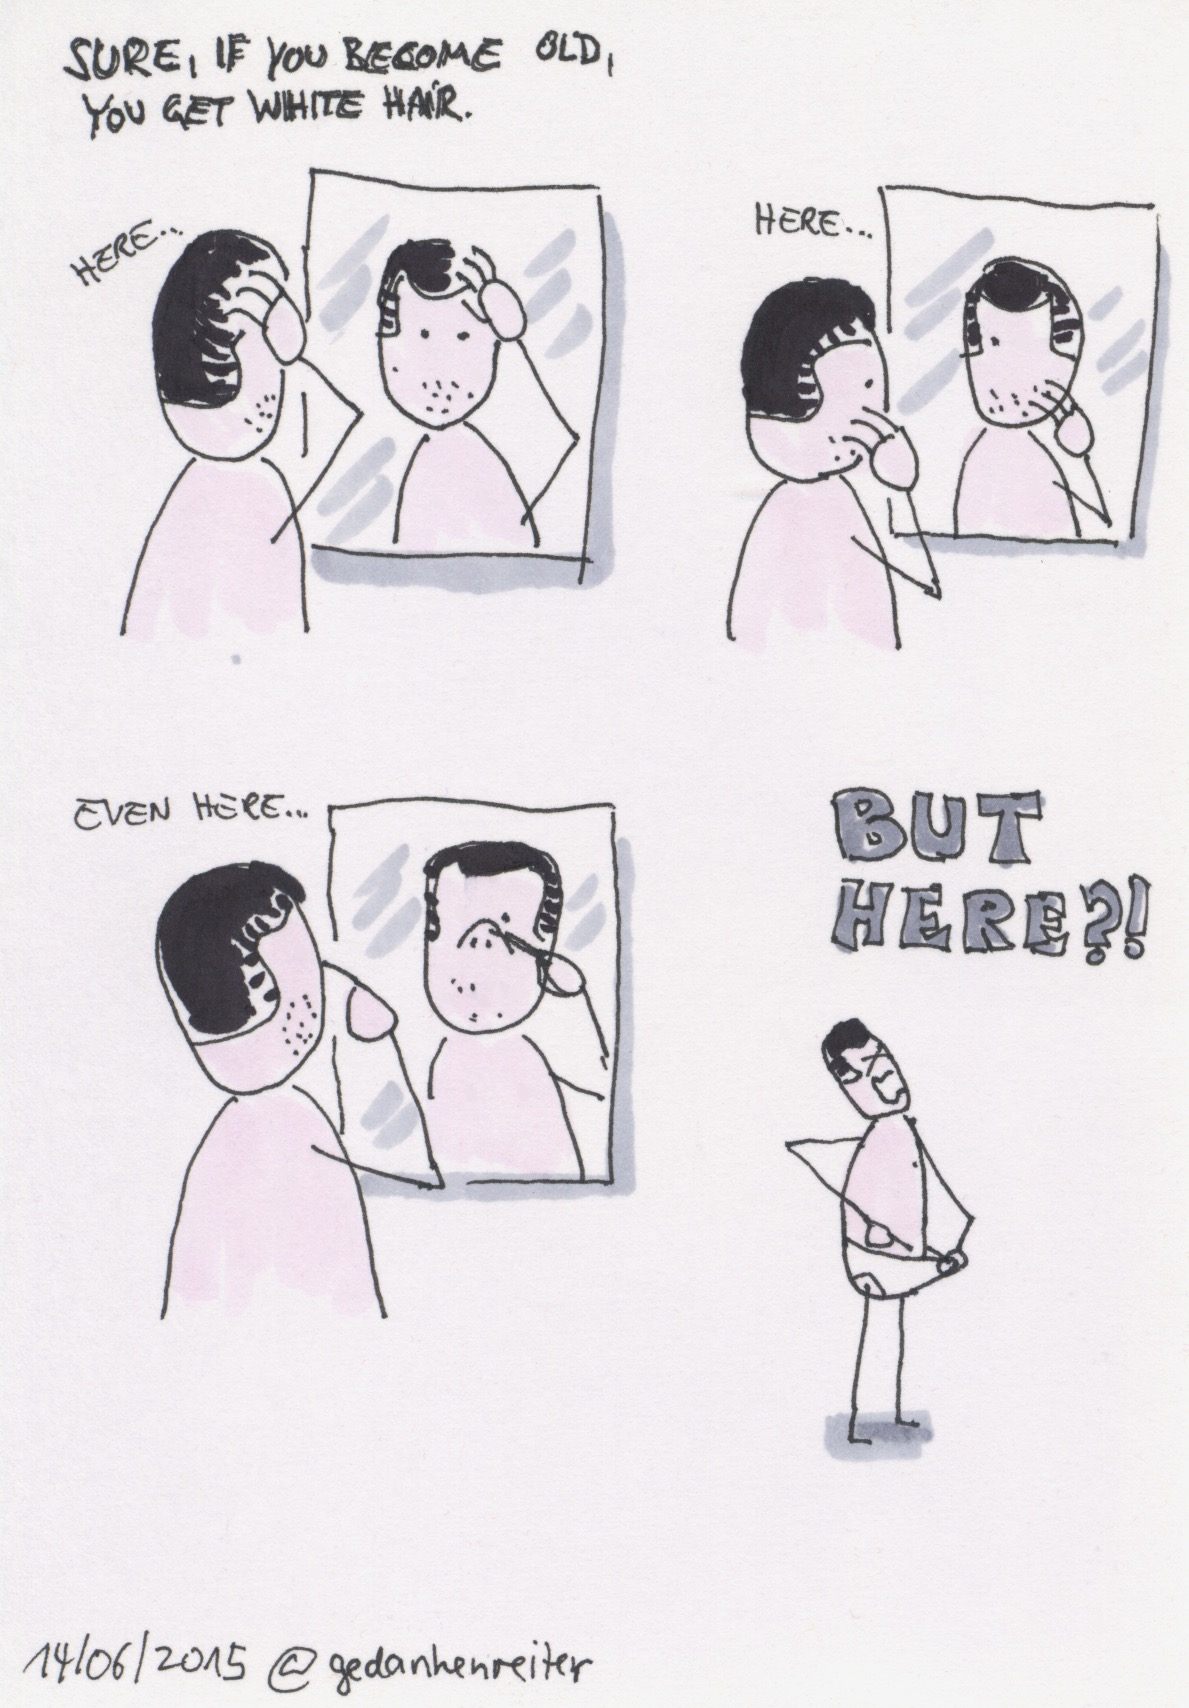 Comic: Sure, if you become old, you get white hair. But here?